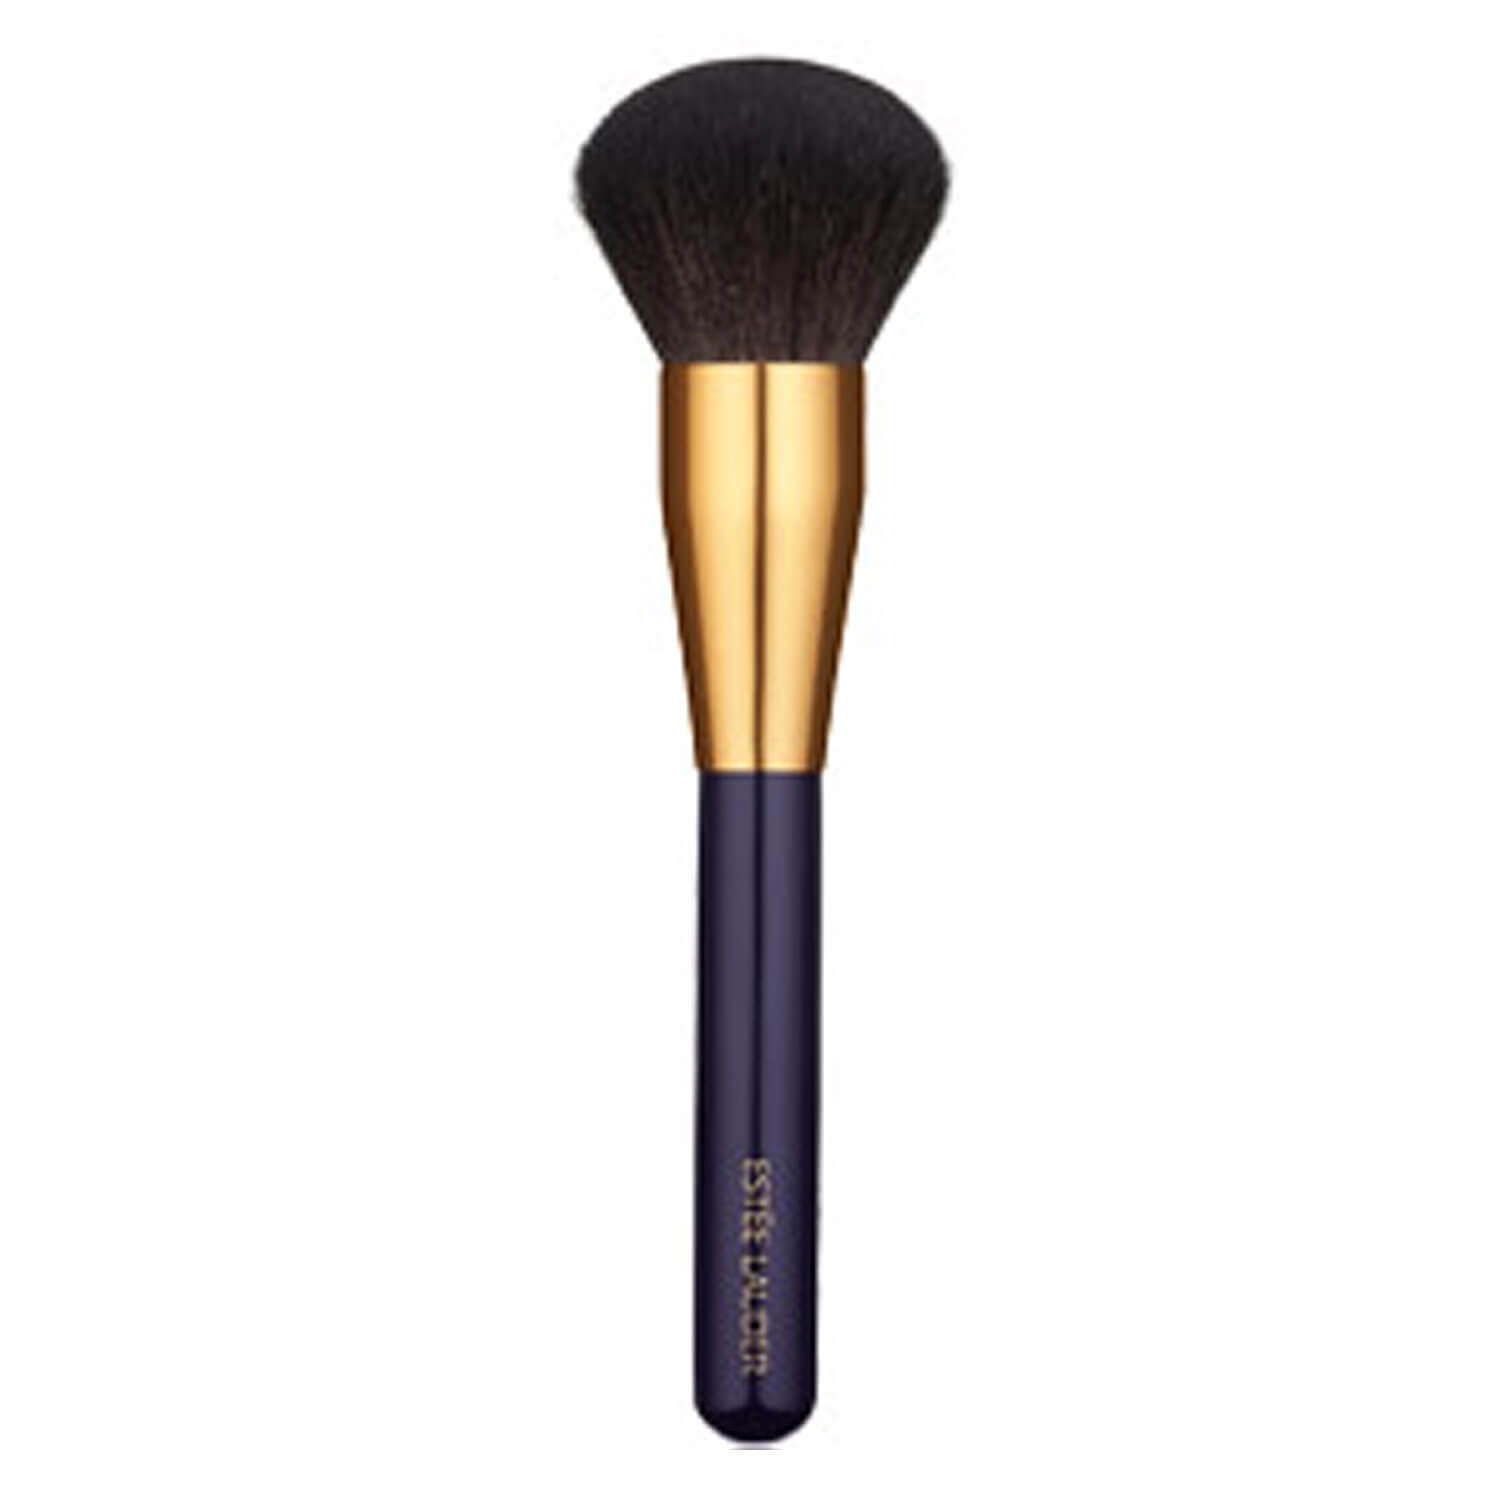 Estée Lauder Tools - Powder Foundation Brush 3